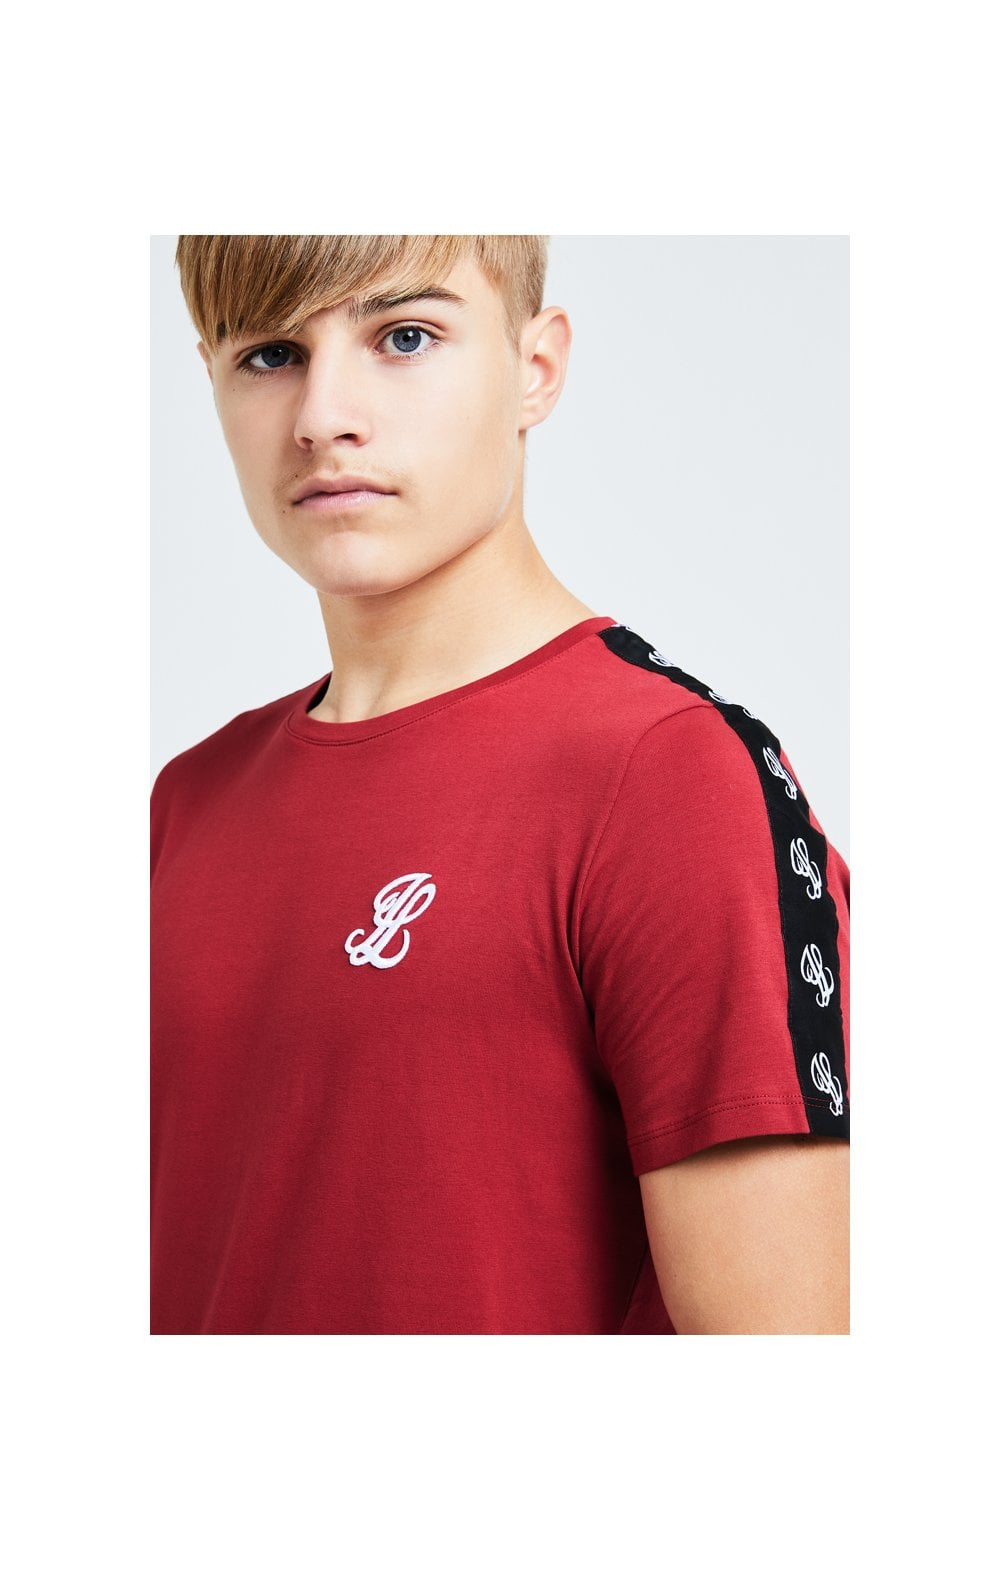 Illusive London Gravity Tape Tee - Red